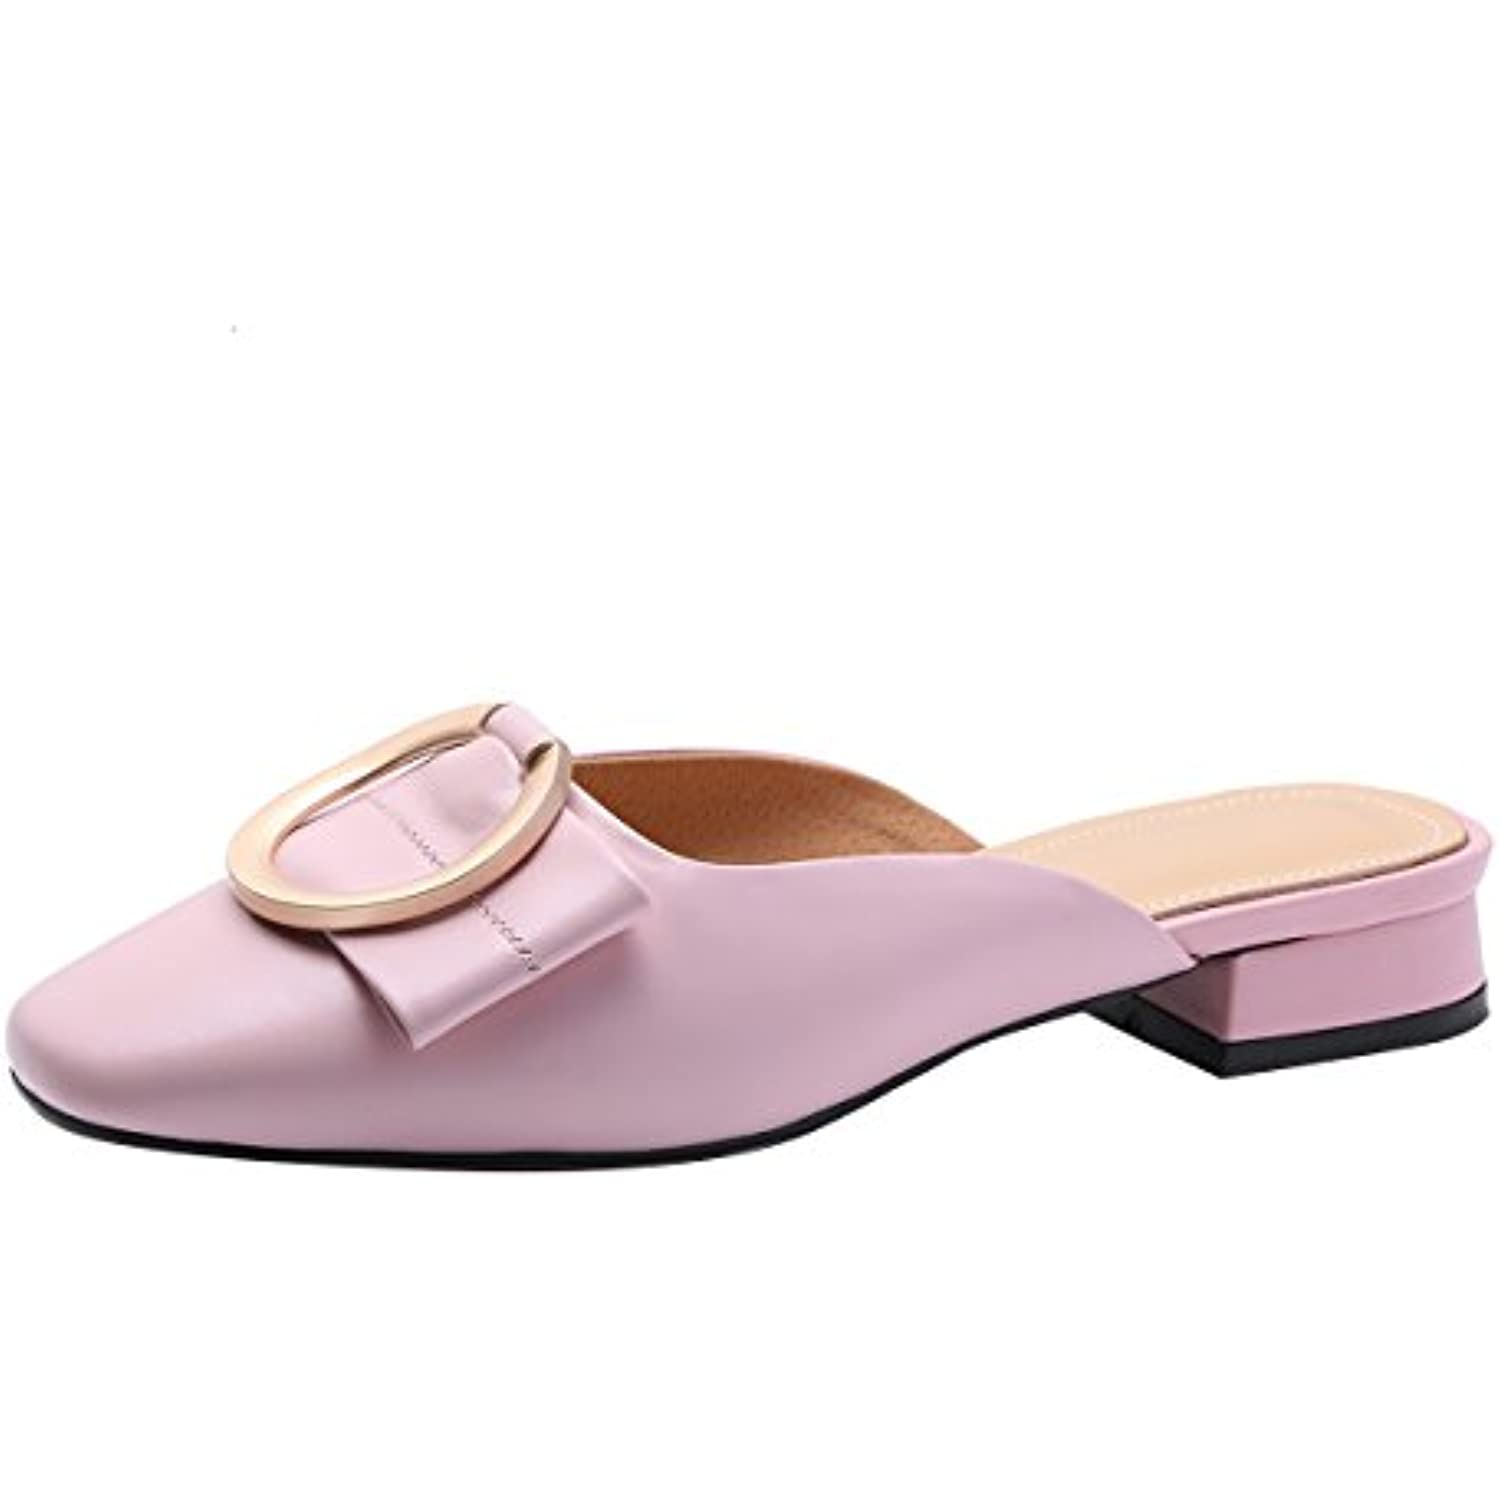 JYChaussures Mules , Mules JYChaussures Femme - B07FBS6C4L - 2e6d9f